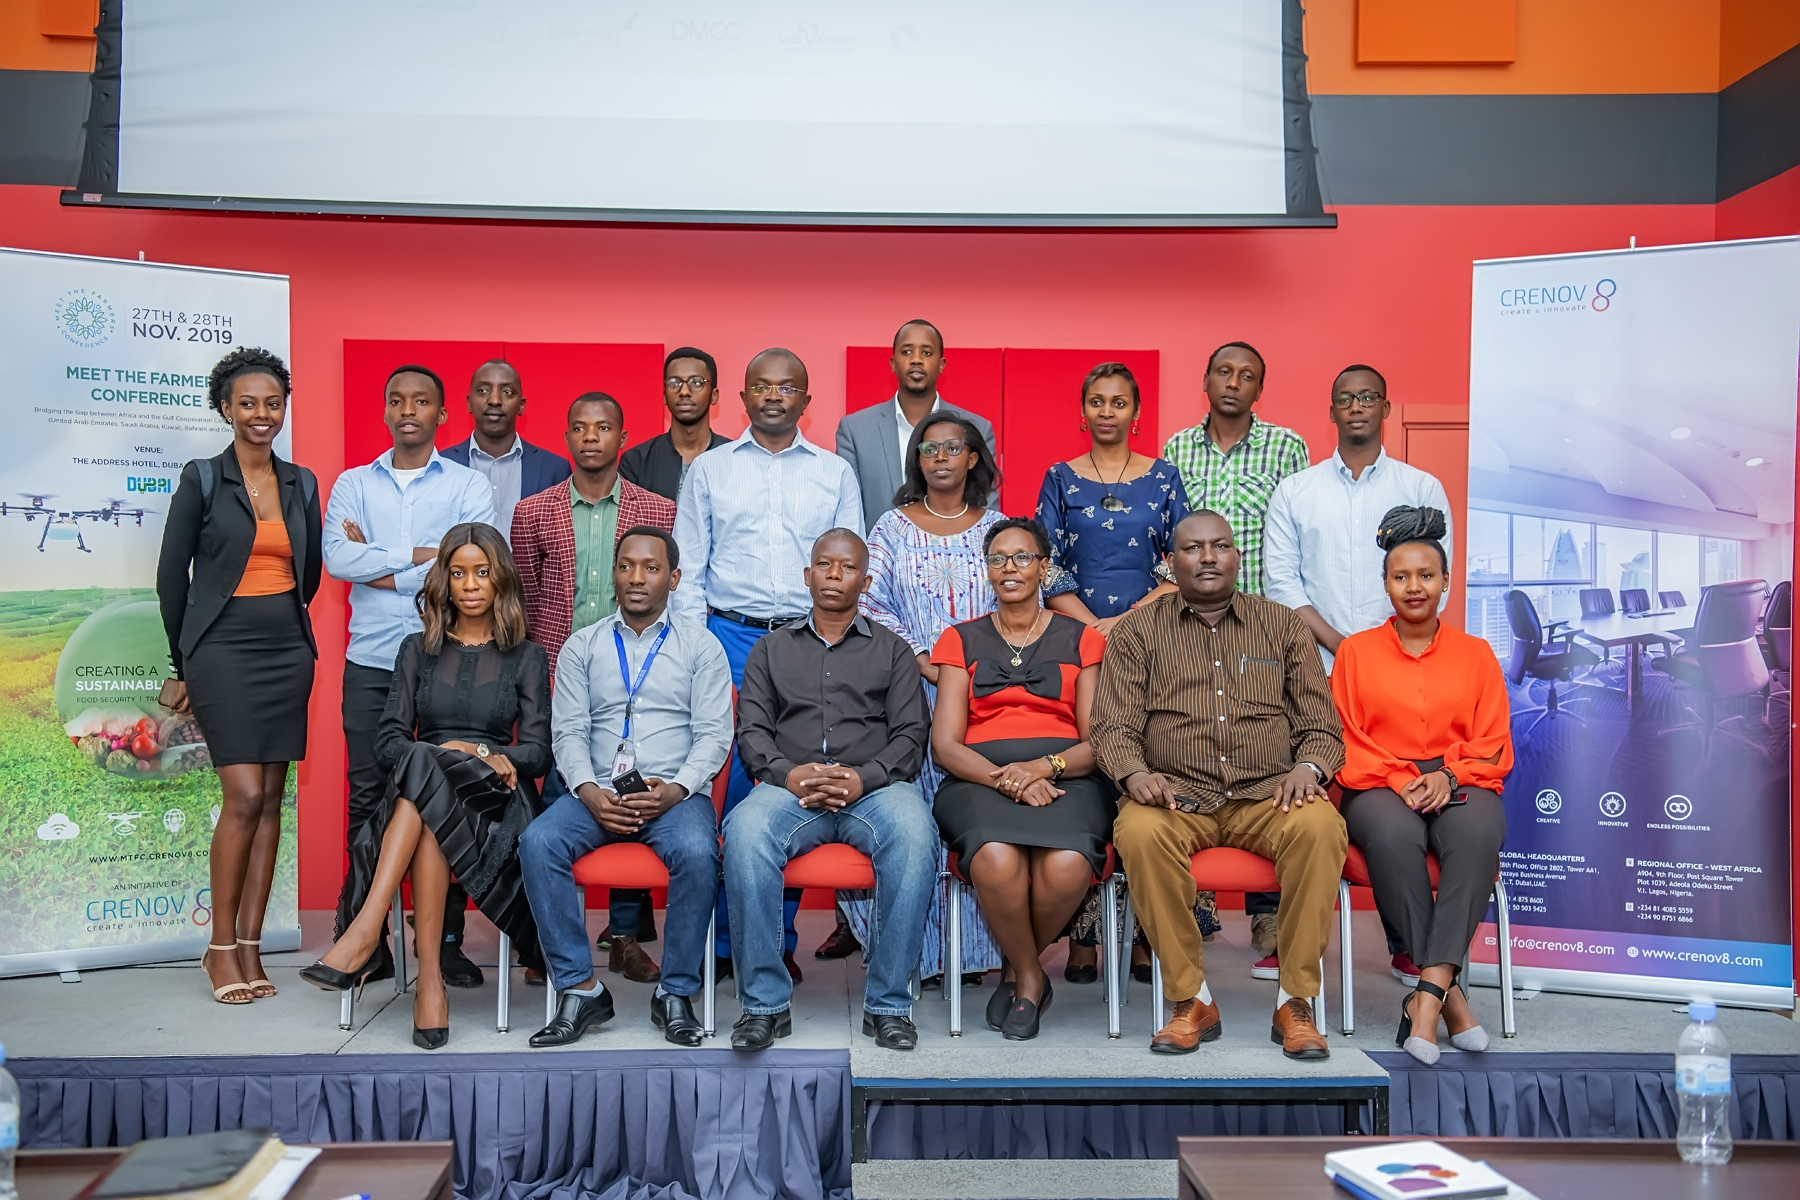 Crenov8 Organizes Media Launch Event for Meet the Farmers Conference 2019 in Rwanda